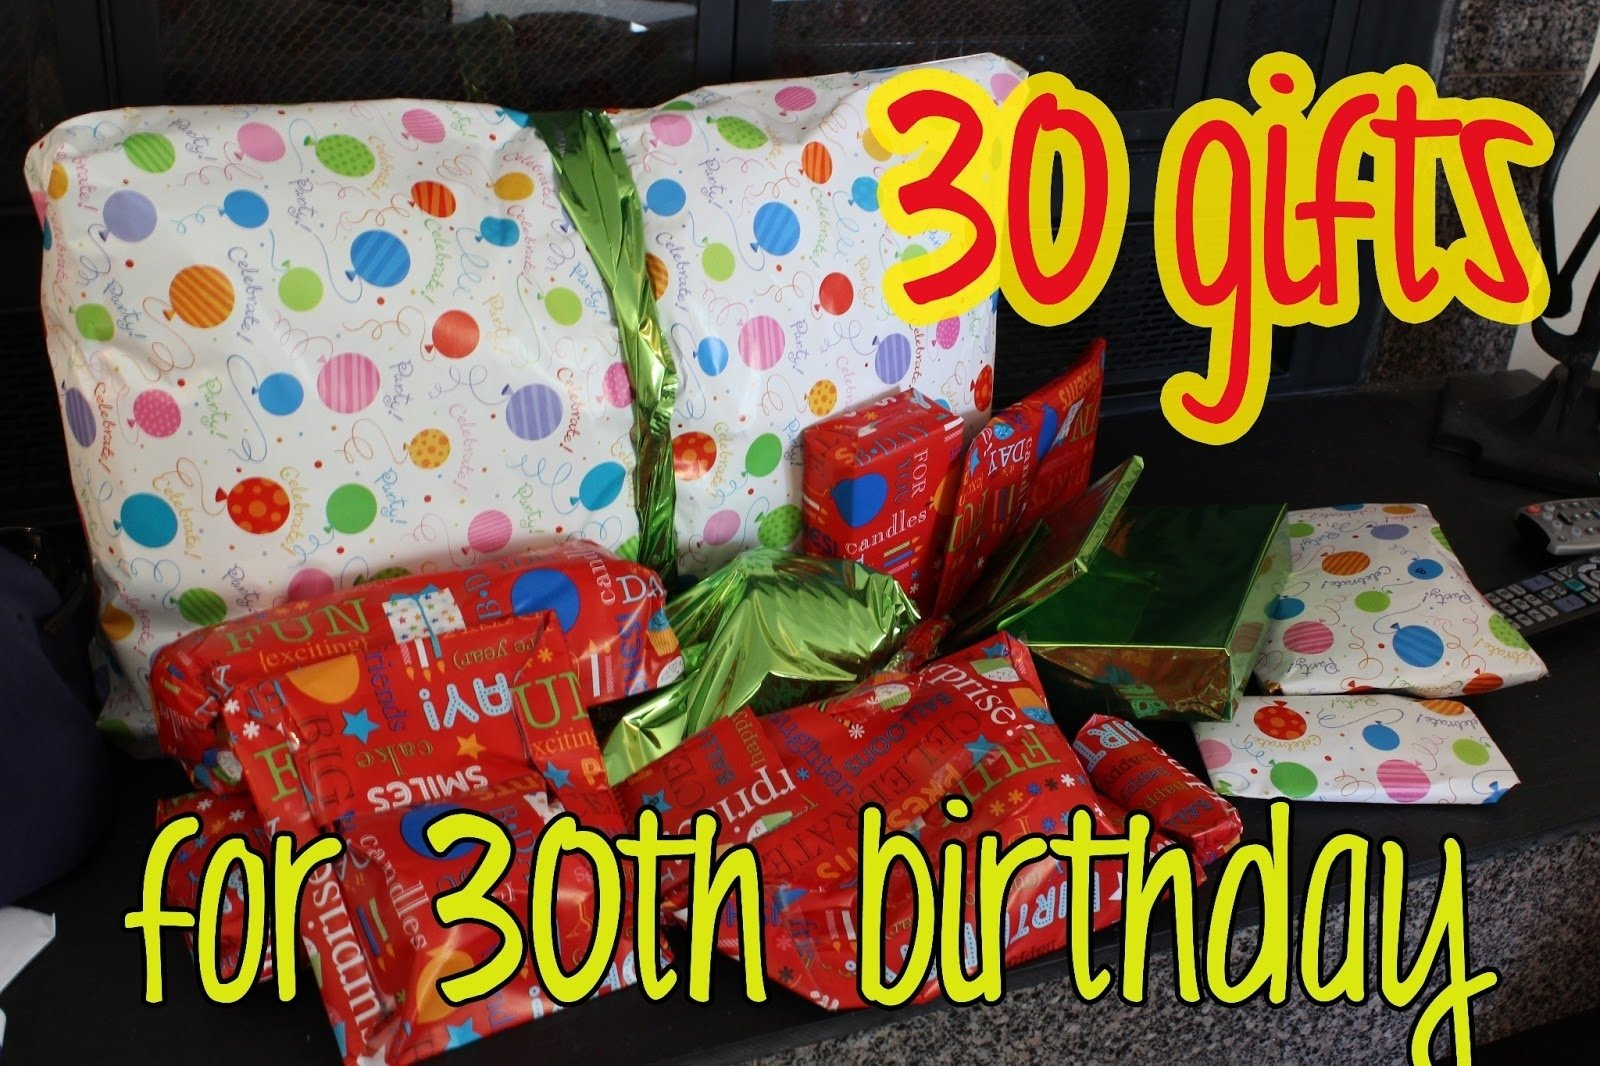 10 Awesome Gift Ideas For 30Th Birthday love elizabethany gift idea 30 gifts for 30th birthday 8 2020